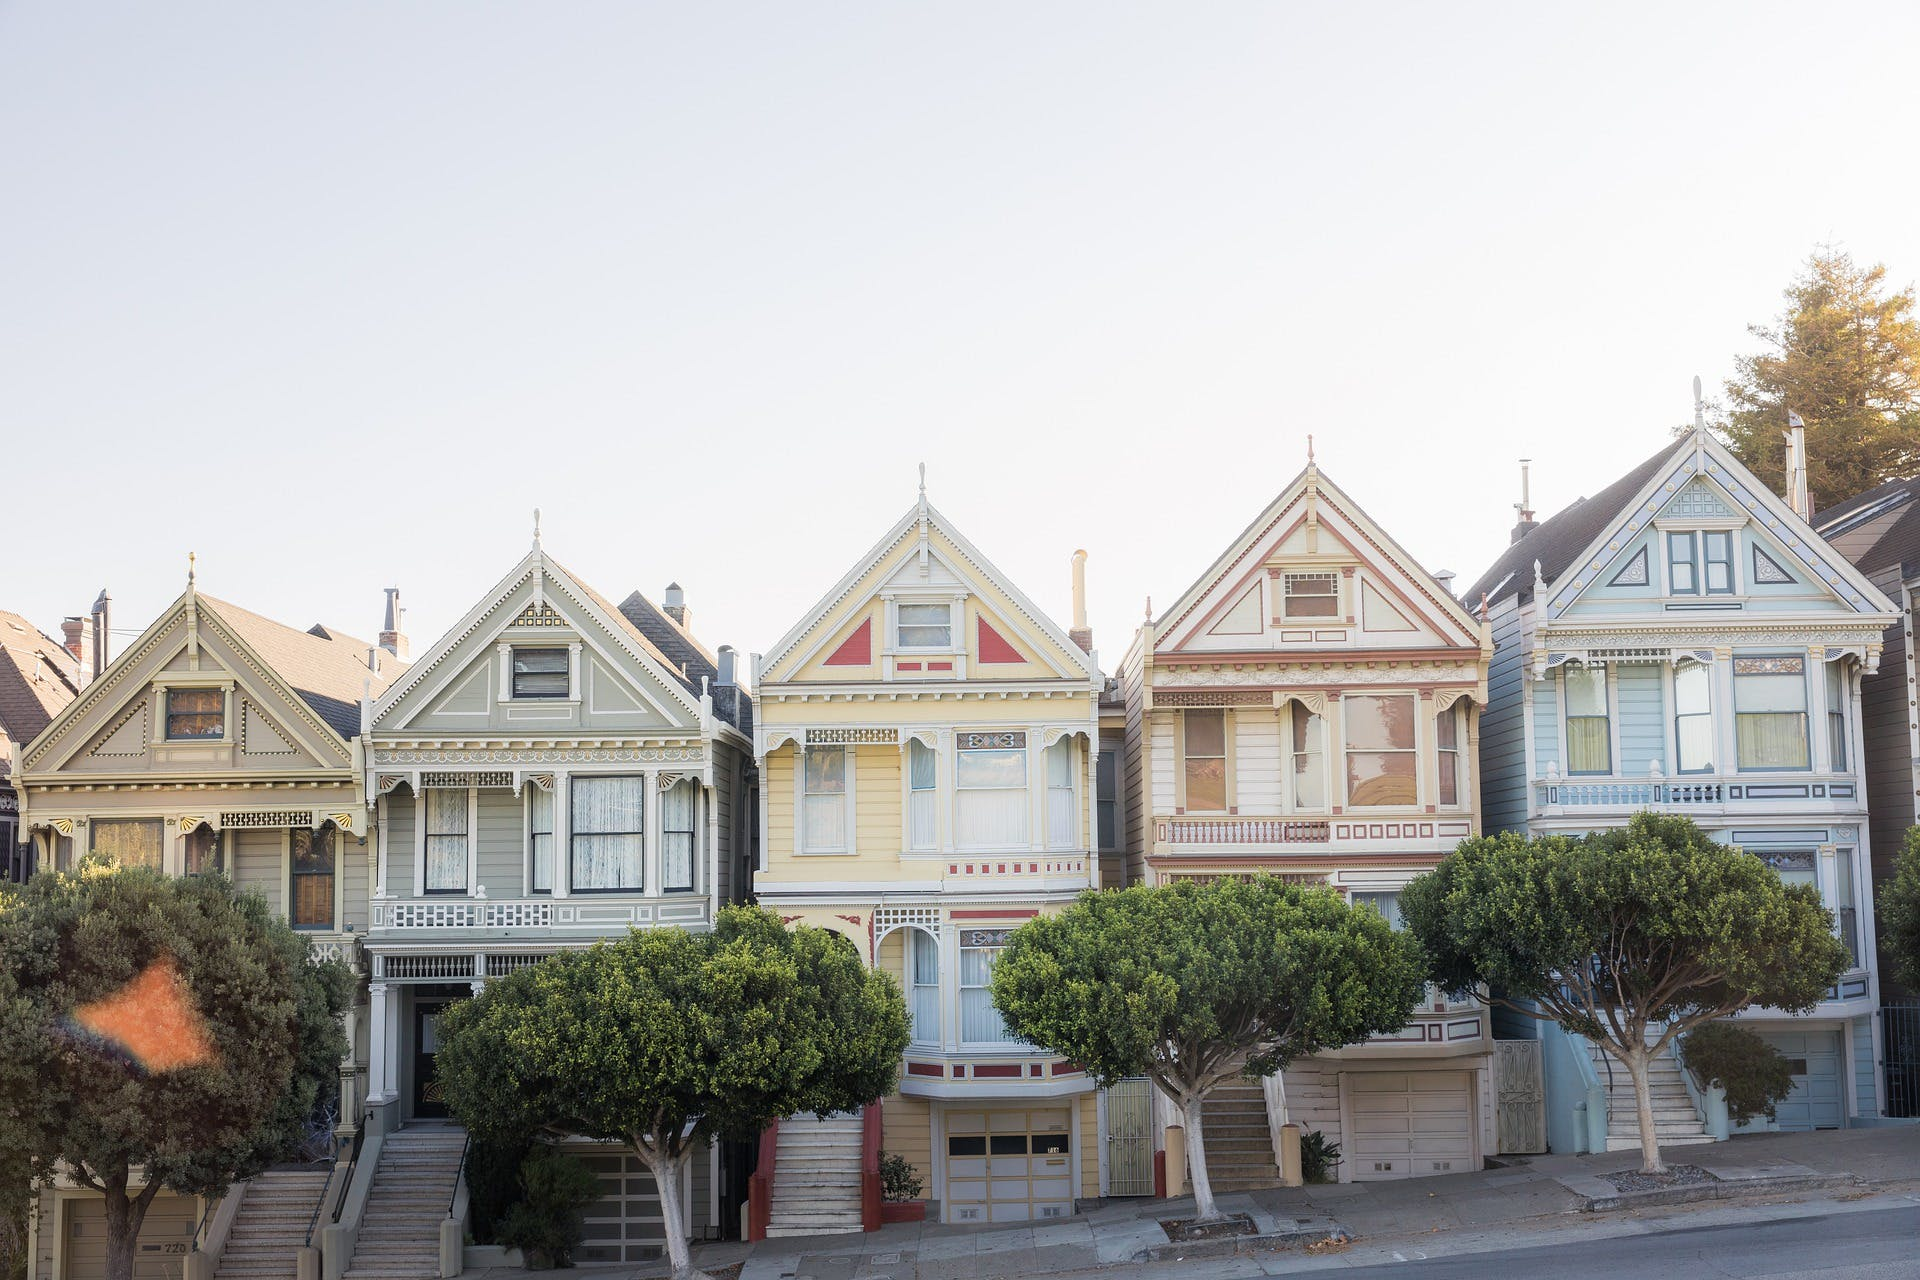 Houses going up the hill in San Francisco, photo by Pixabay